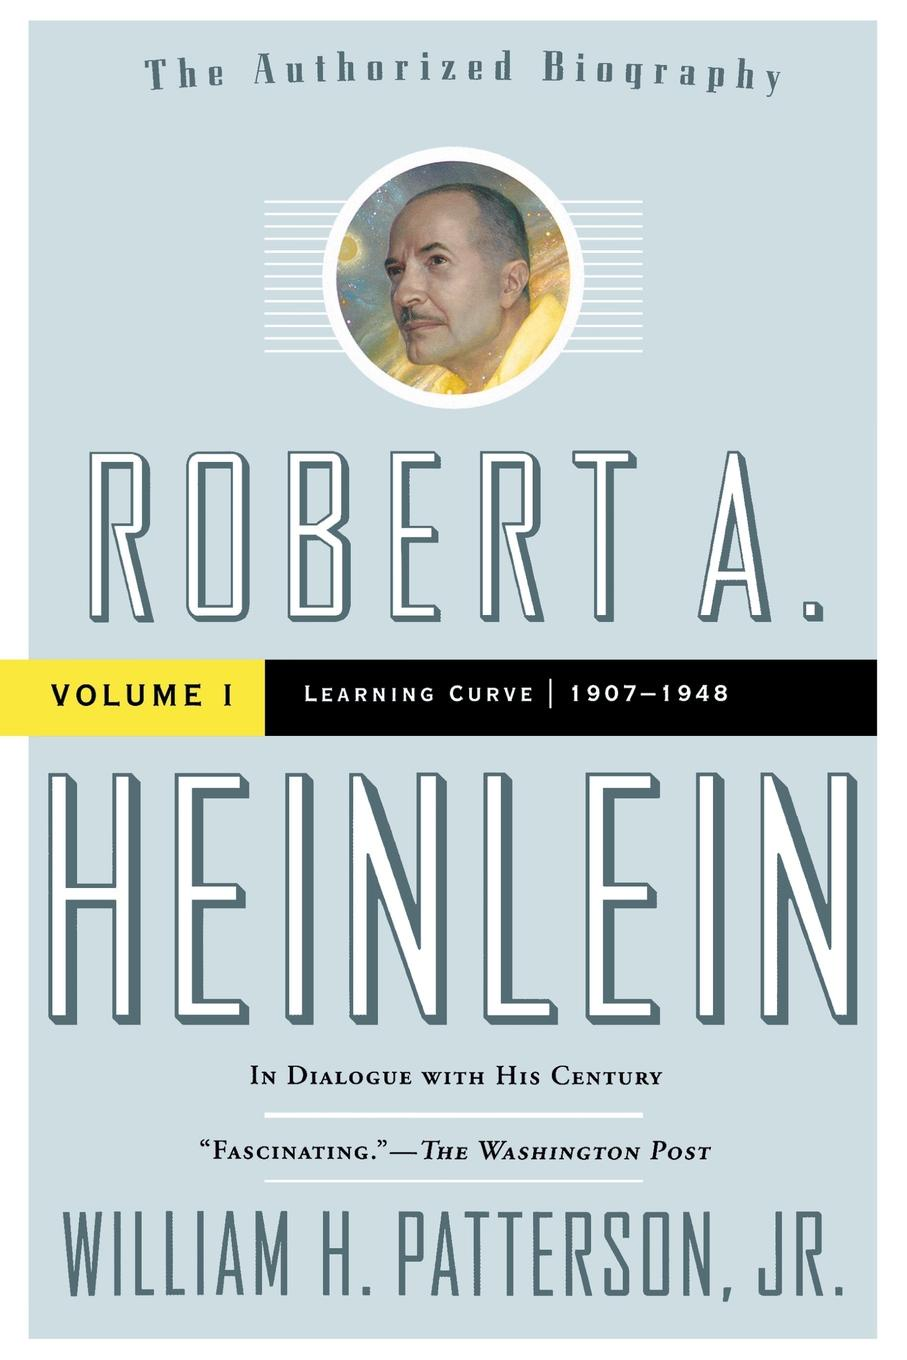 William H. Jr. Patterson Robert A. Heinlein. In Dialogue with His Century, Volume 1: 1907-1948: Learning Curve terry mclaughlin learning curve